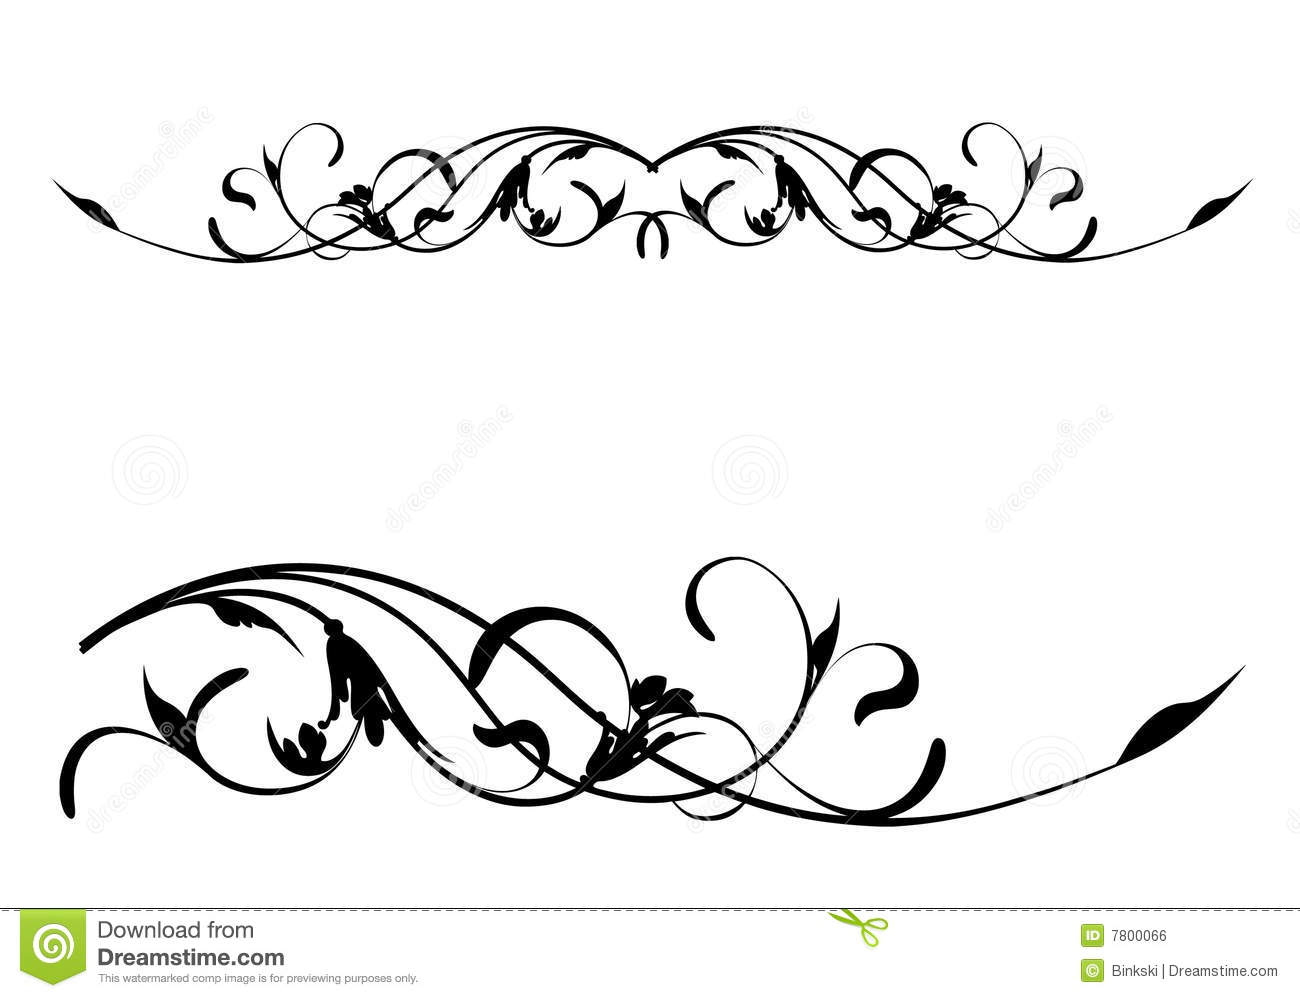 Free Scroll Clipart For Wedding Invitations | Free download best ...